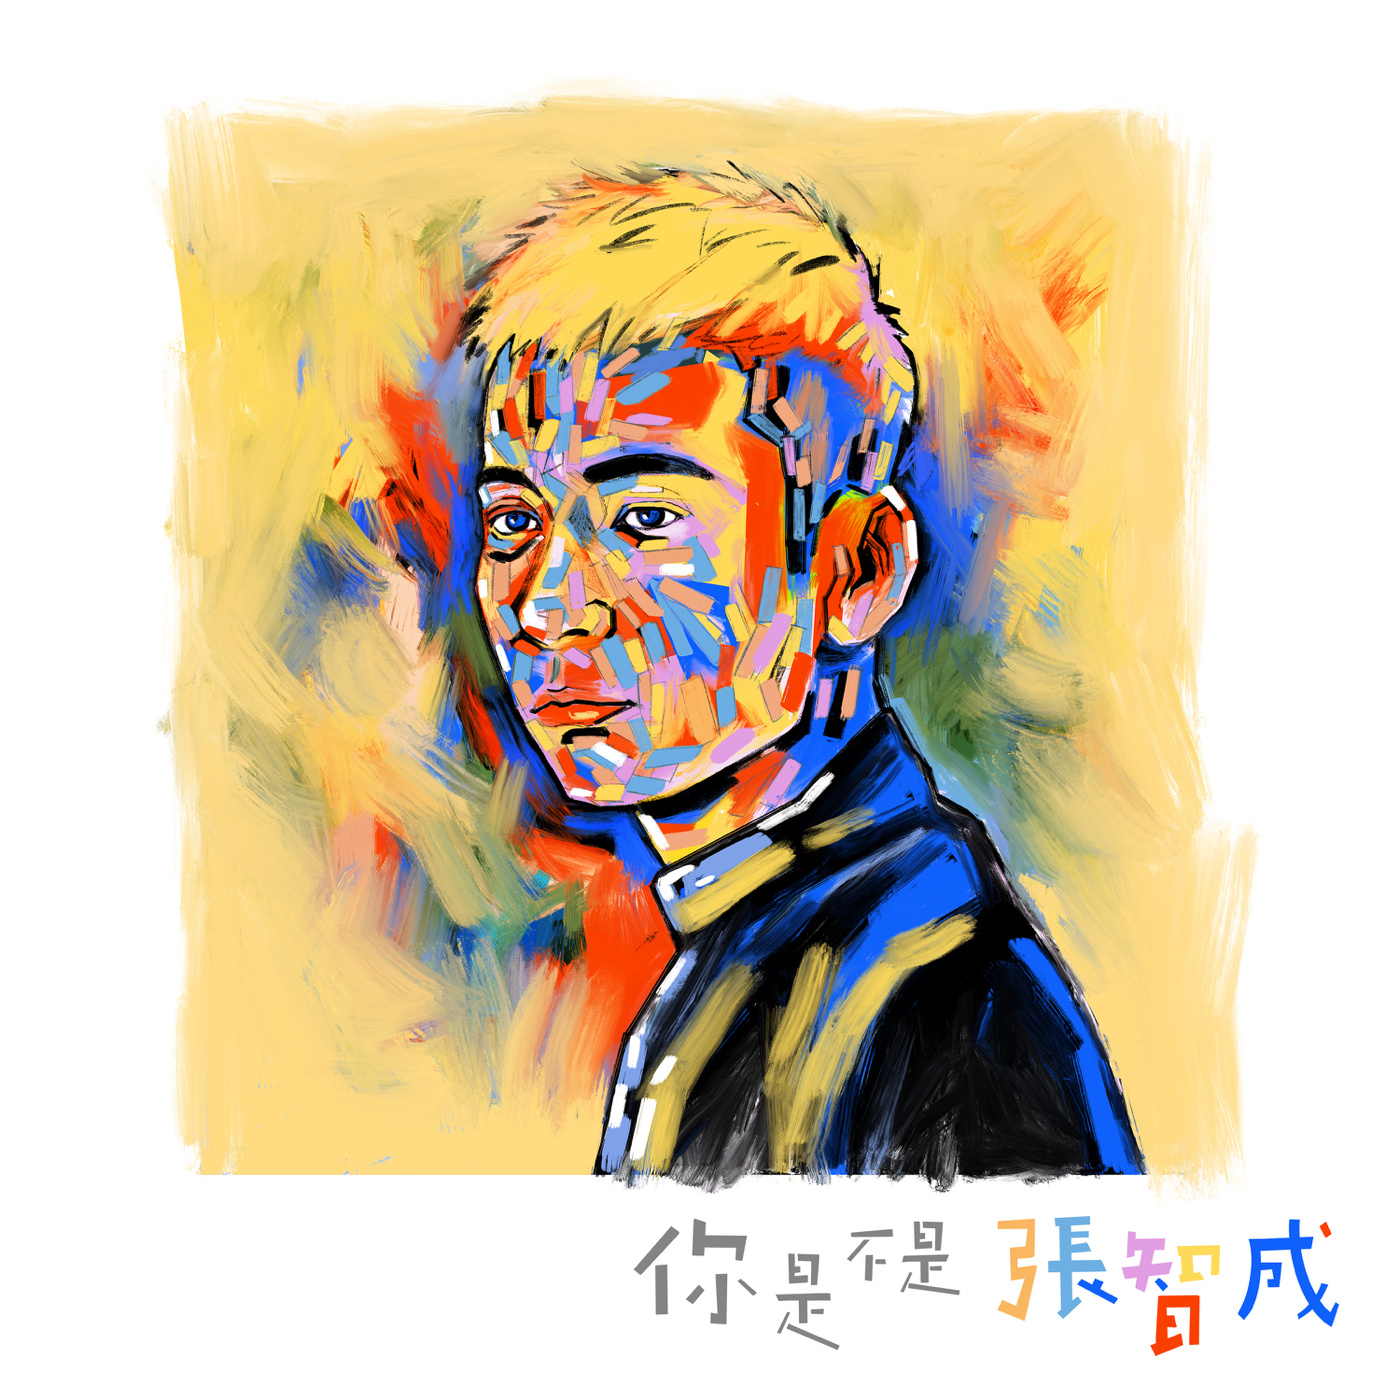 张智成 你是不是 张智成 Large Album Art Cover